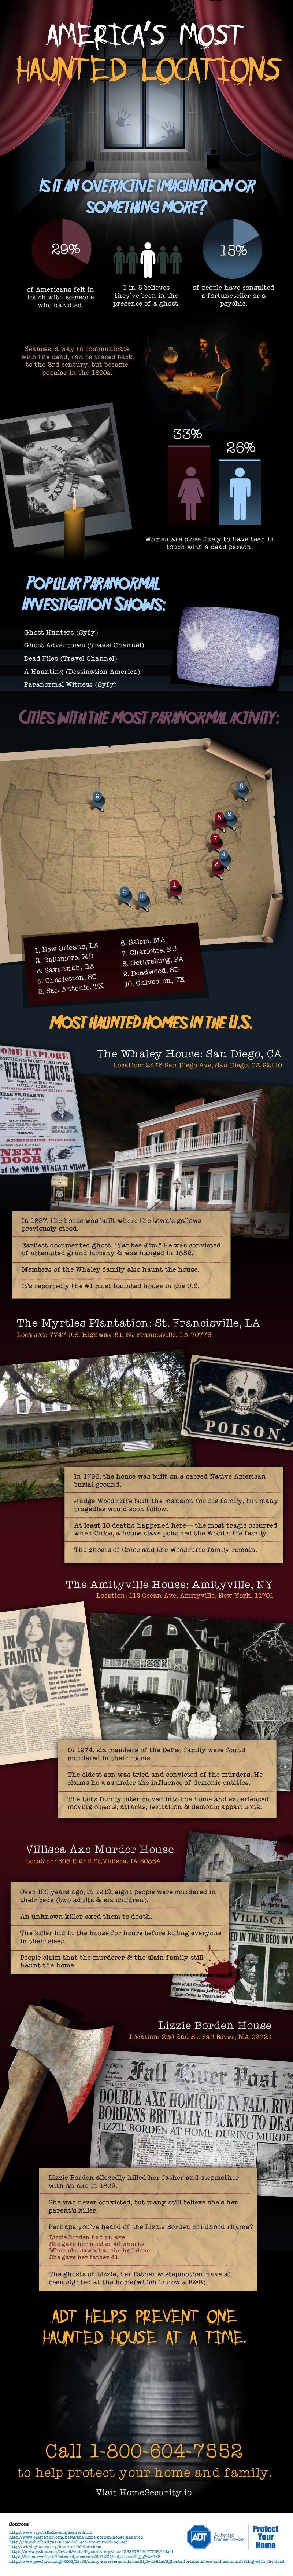 america-haunted-locations-infographic